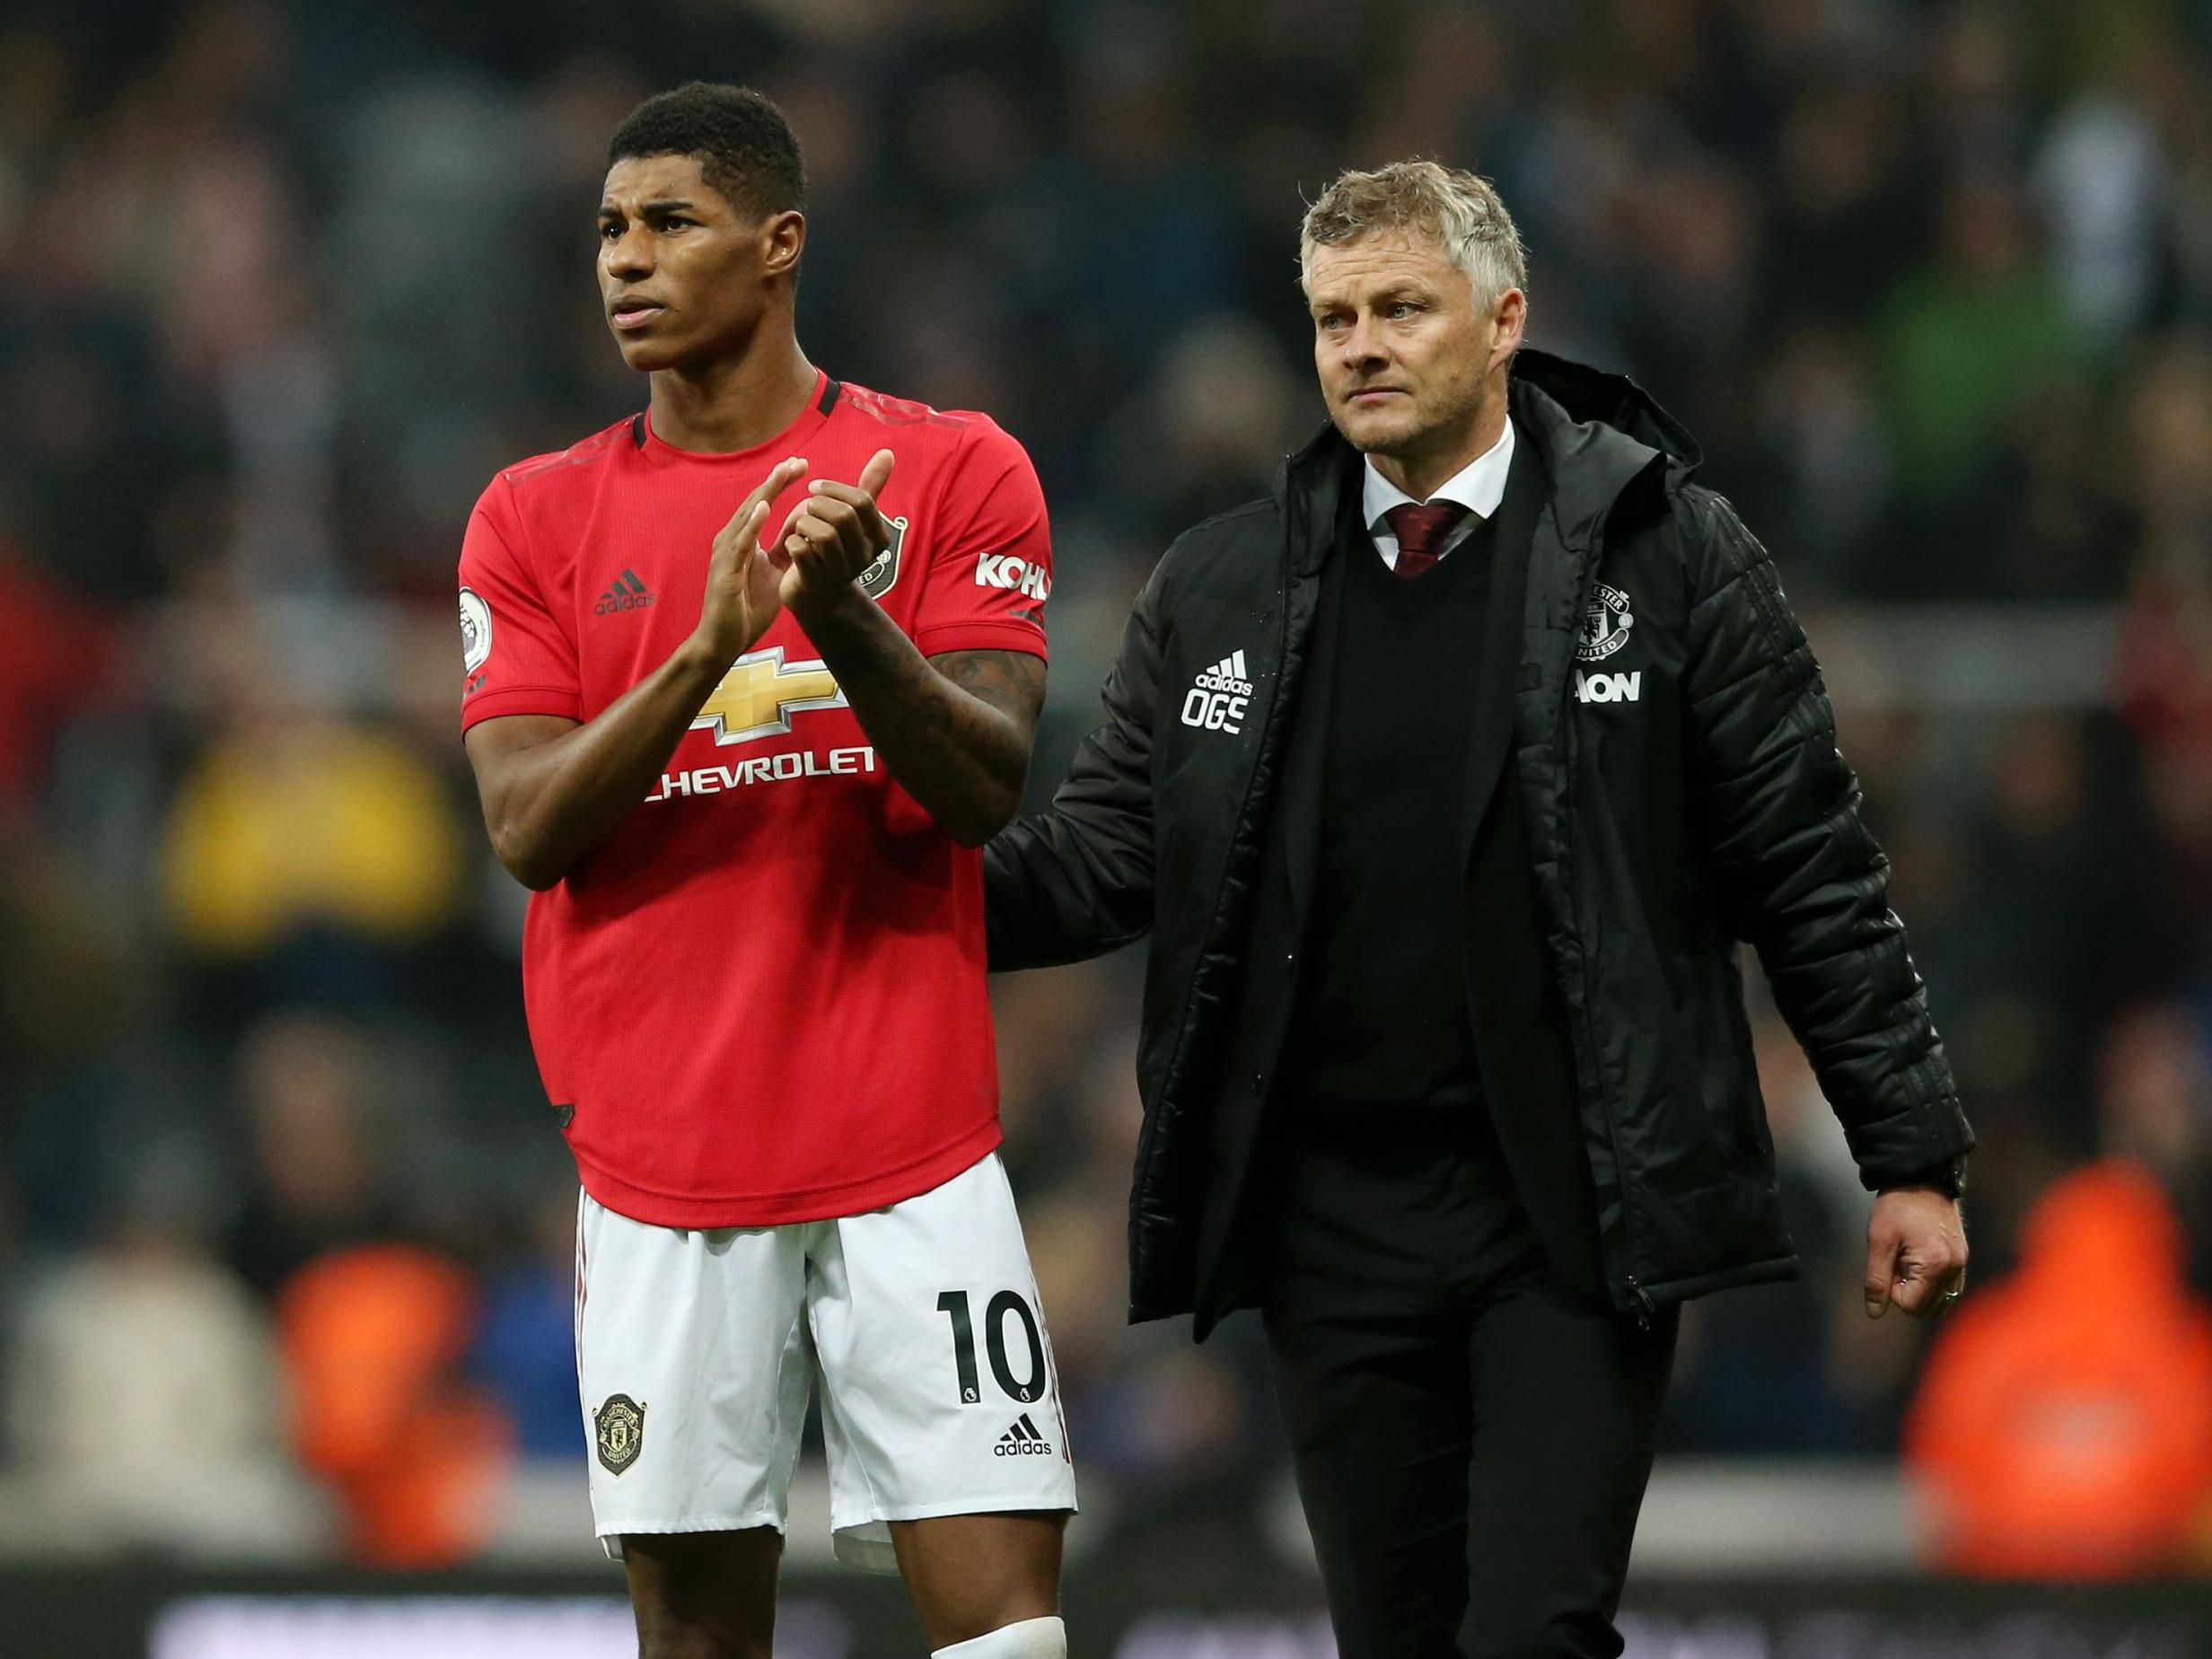 Ole Gunnar Solskjaer has finally recognised Manchester United's problems – but can he fix them?